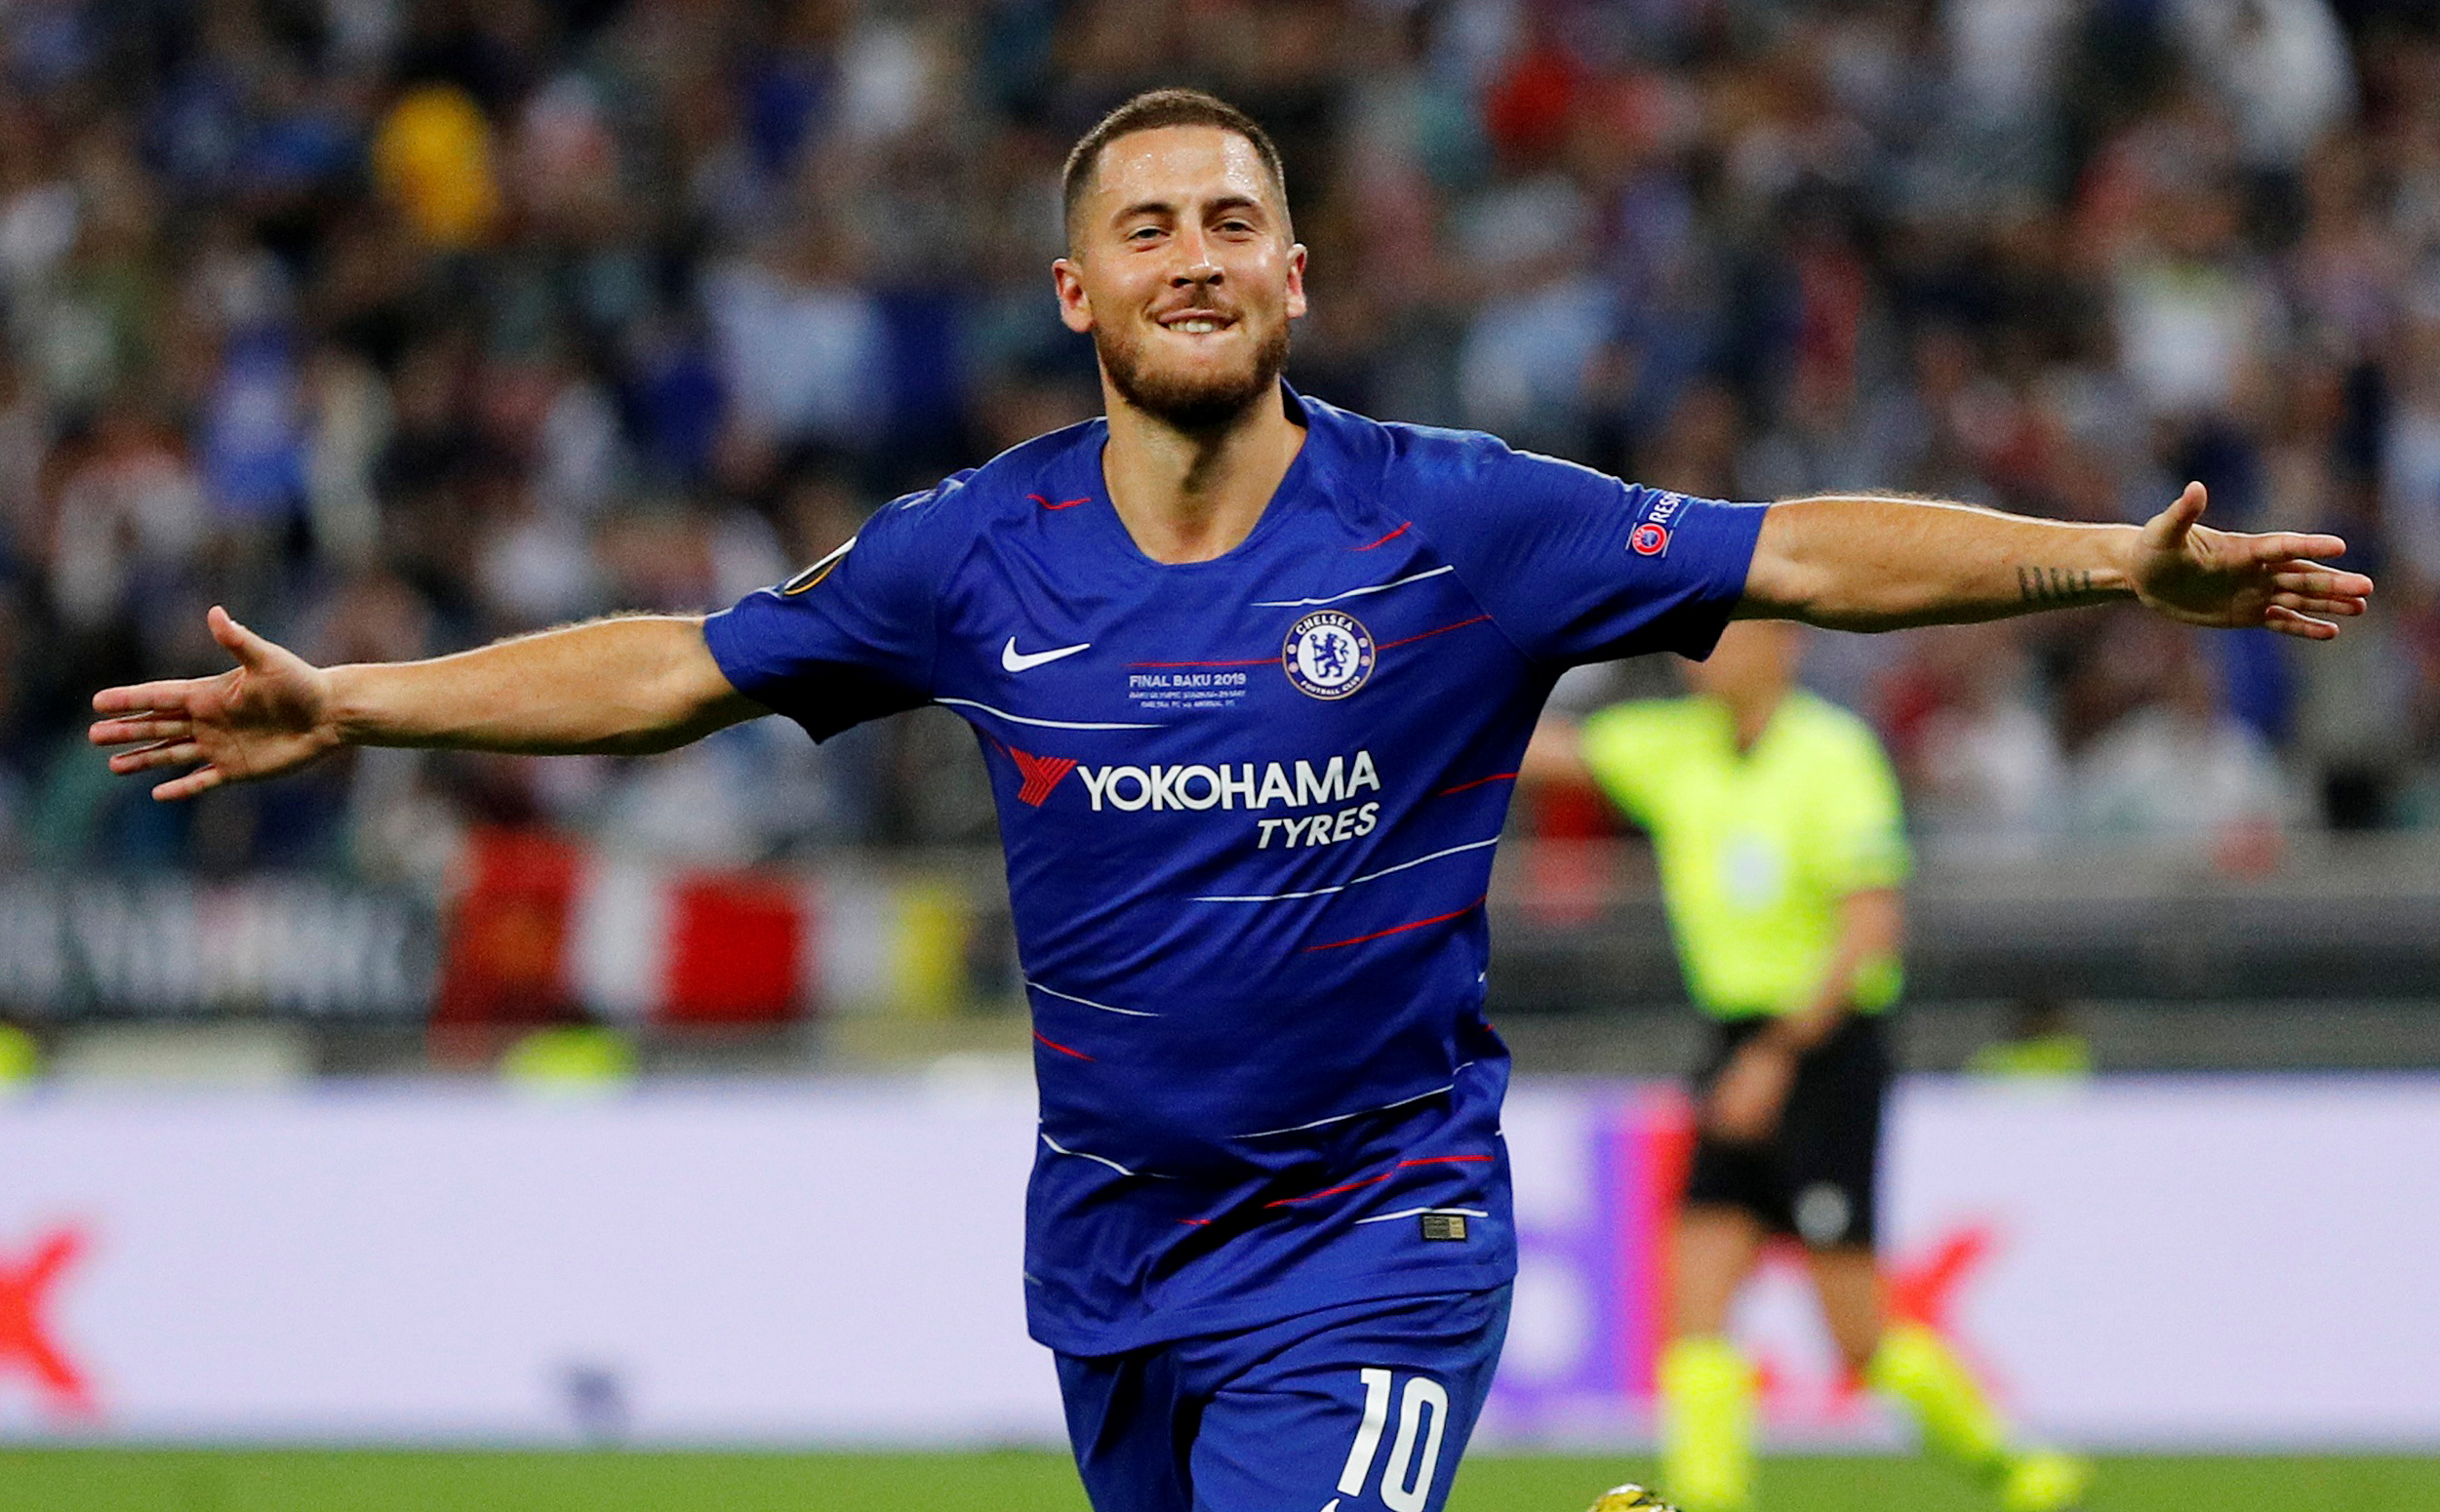 Football Hazard Joins Real Madrid On Five Year Contract The